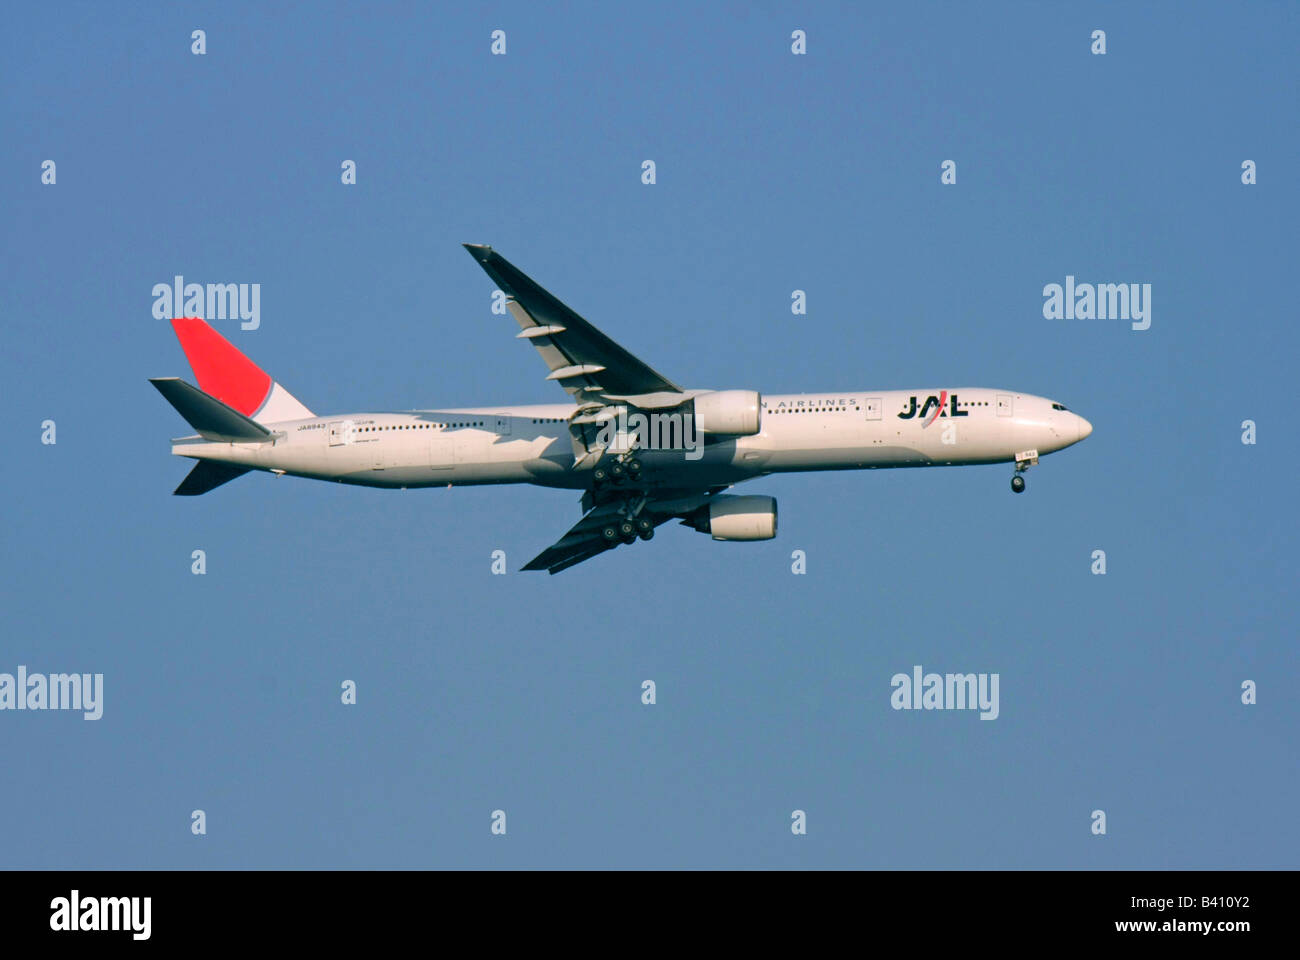 Japan Airlines Boeing 777 passenger aircraft is approaching to land Tokyo Japan - Stock Image